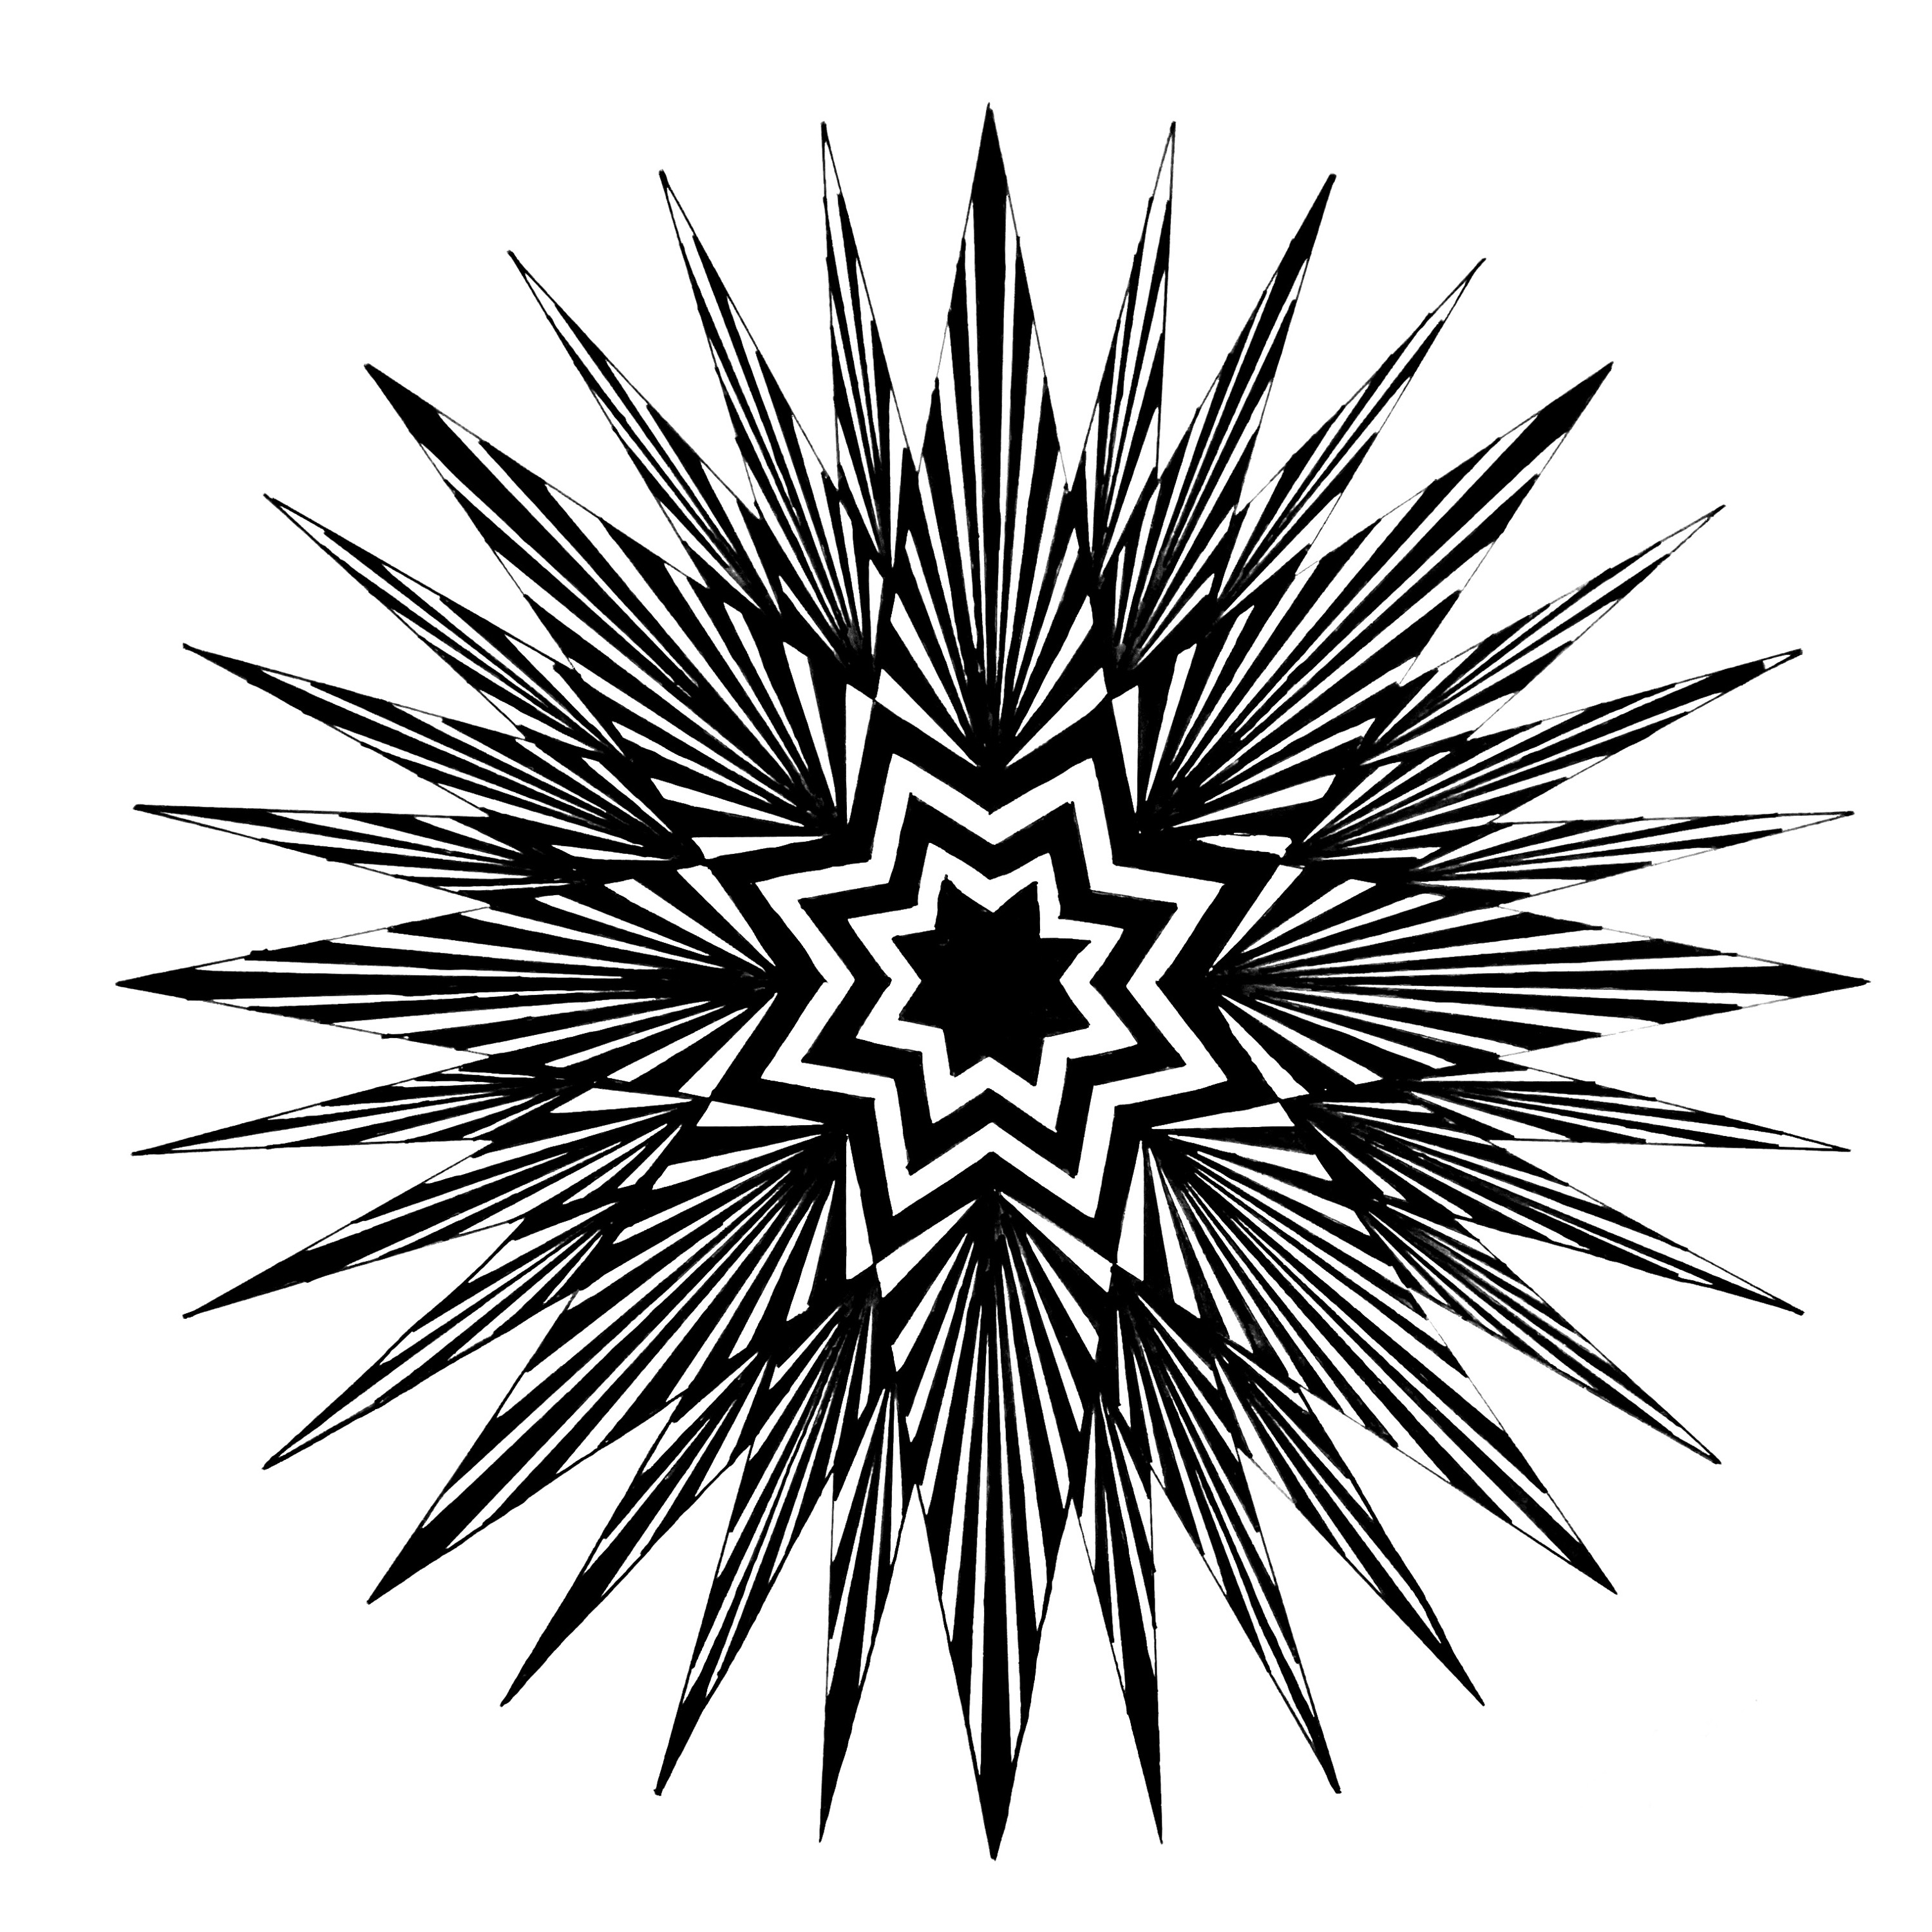 32 Pointed Star